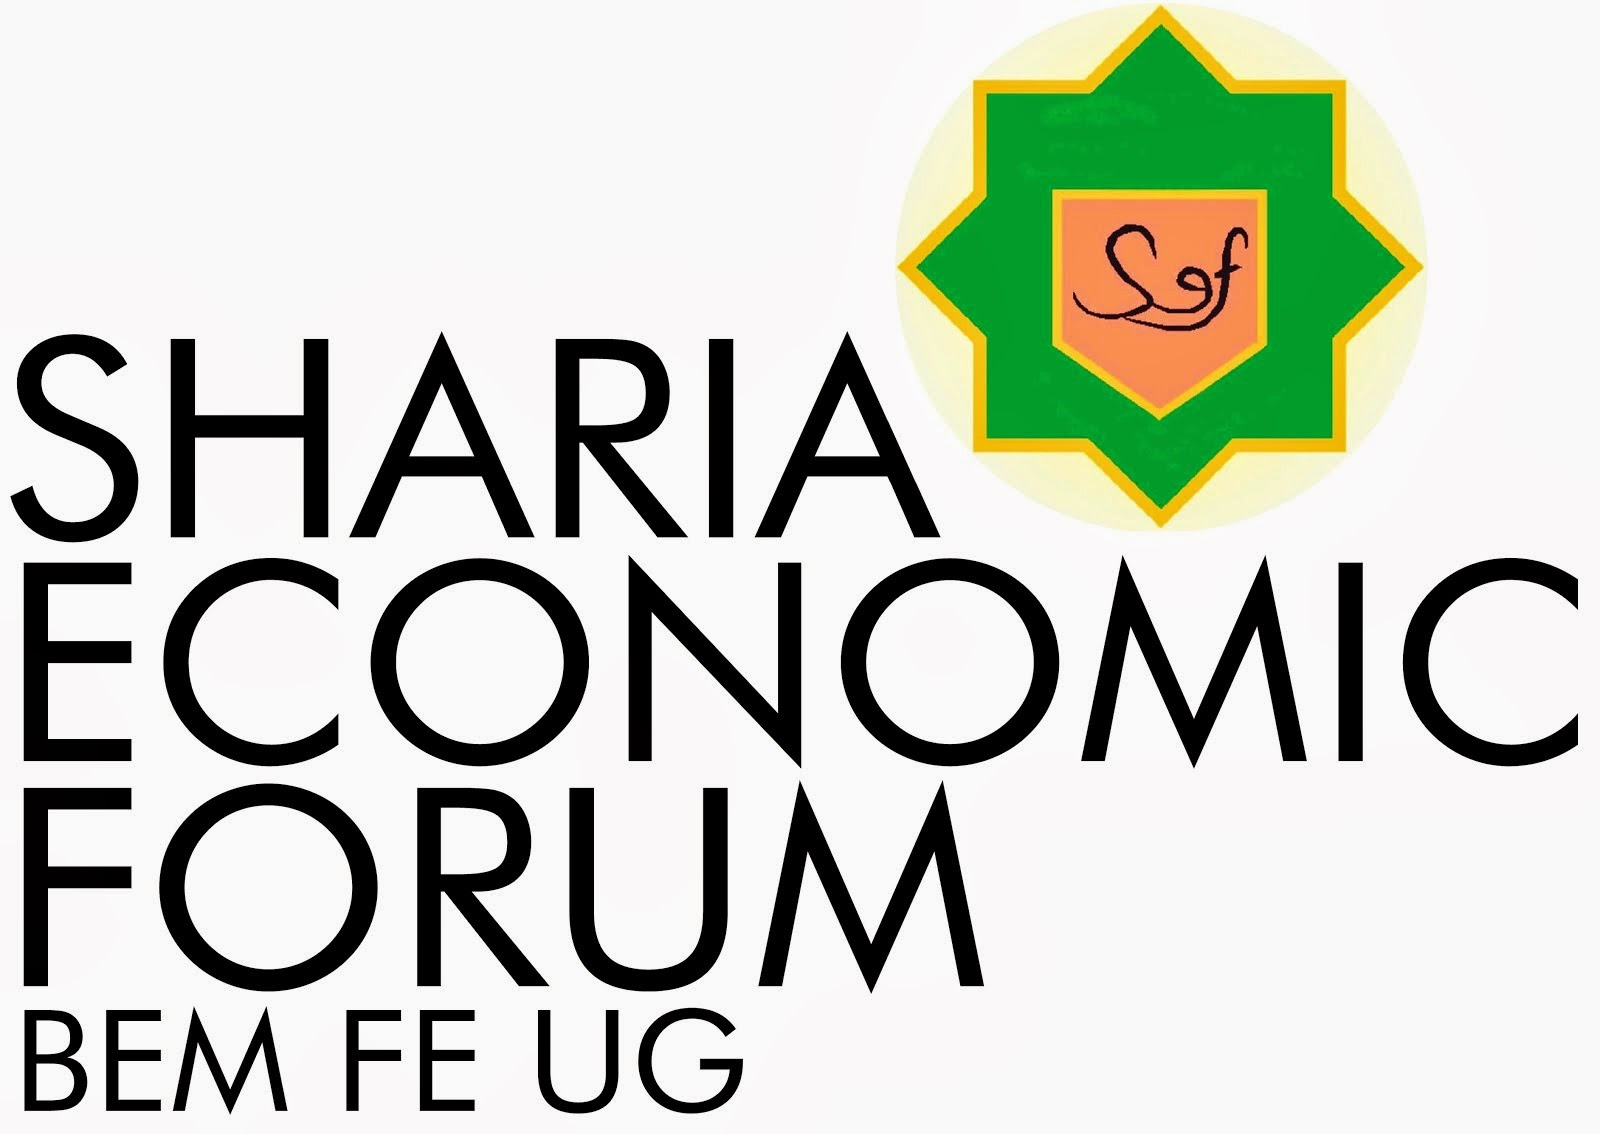 Sharia Economic Forum